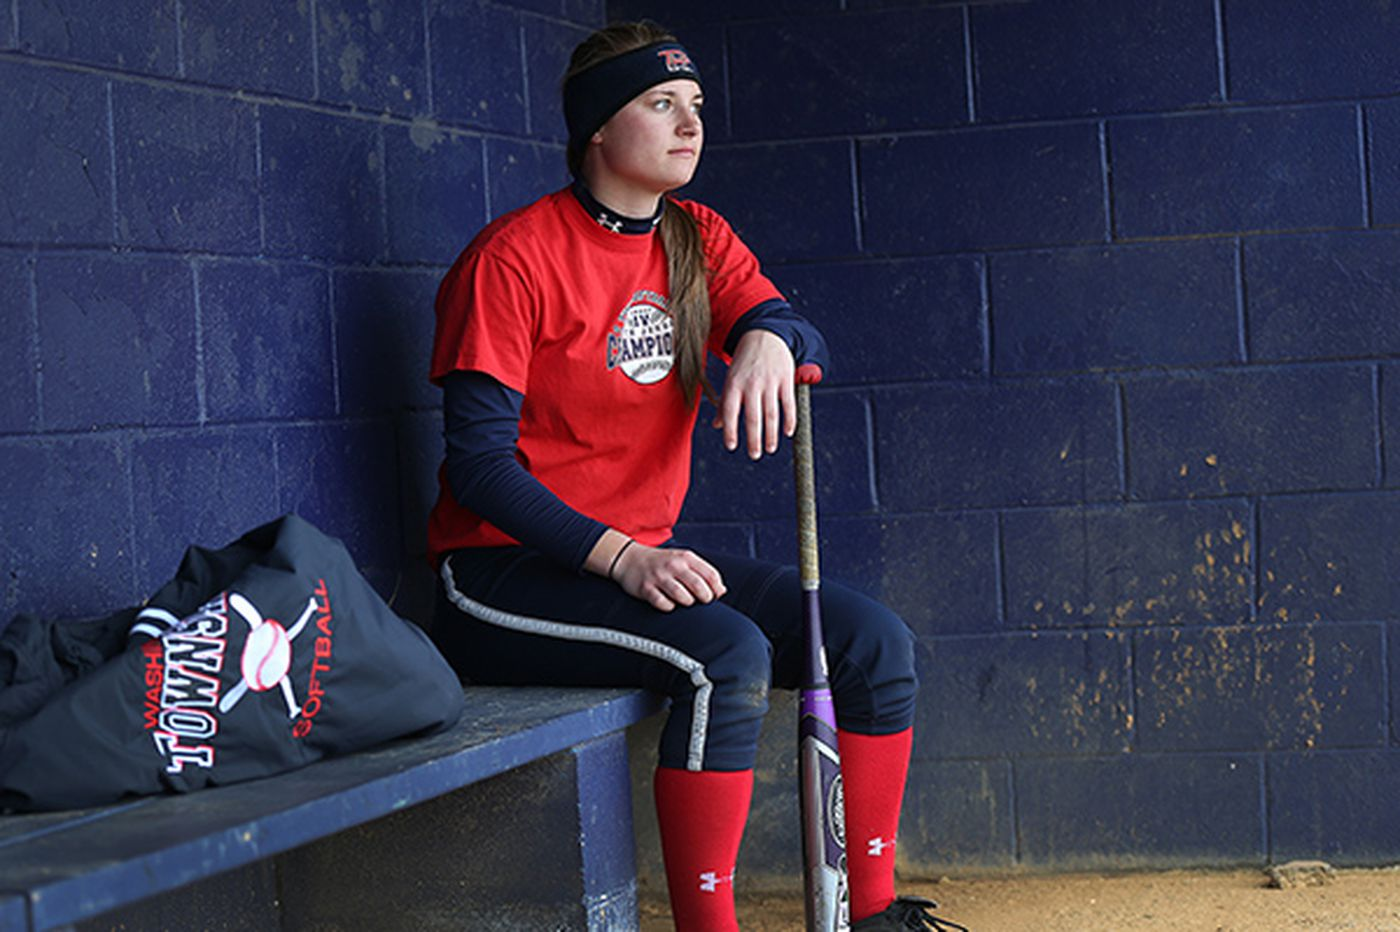 Washington Township's Hughes following in brother's footsteps